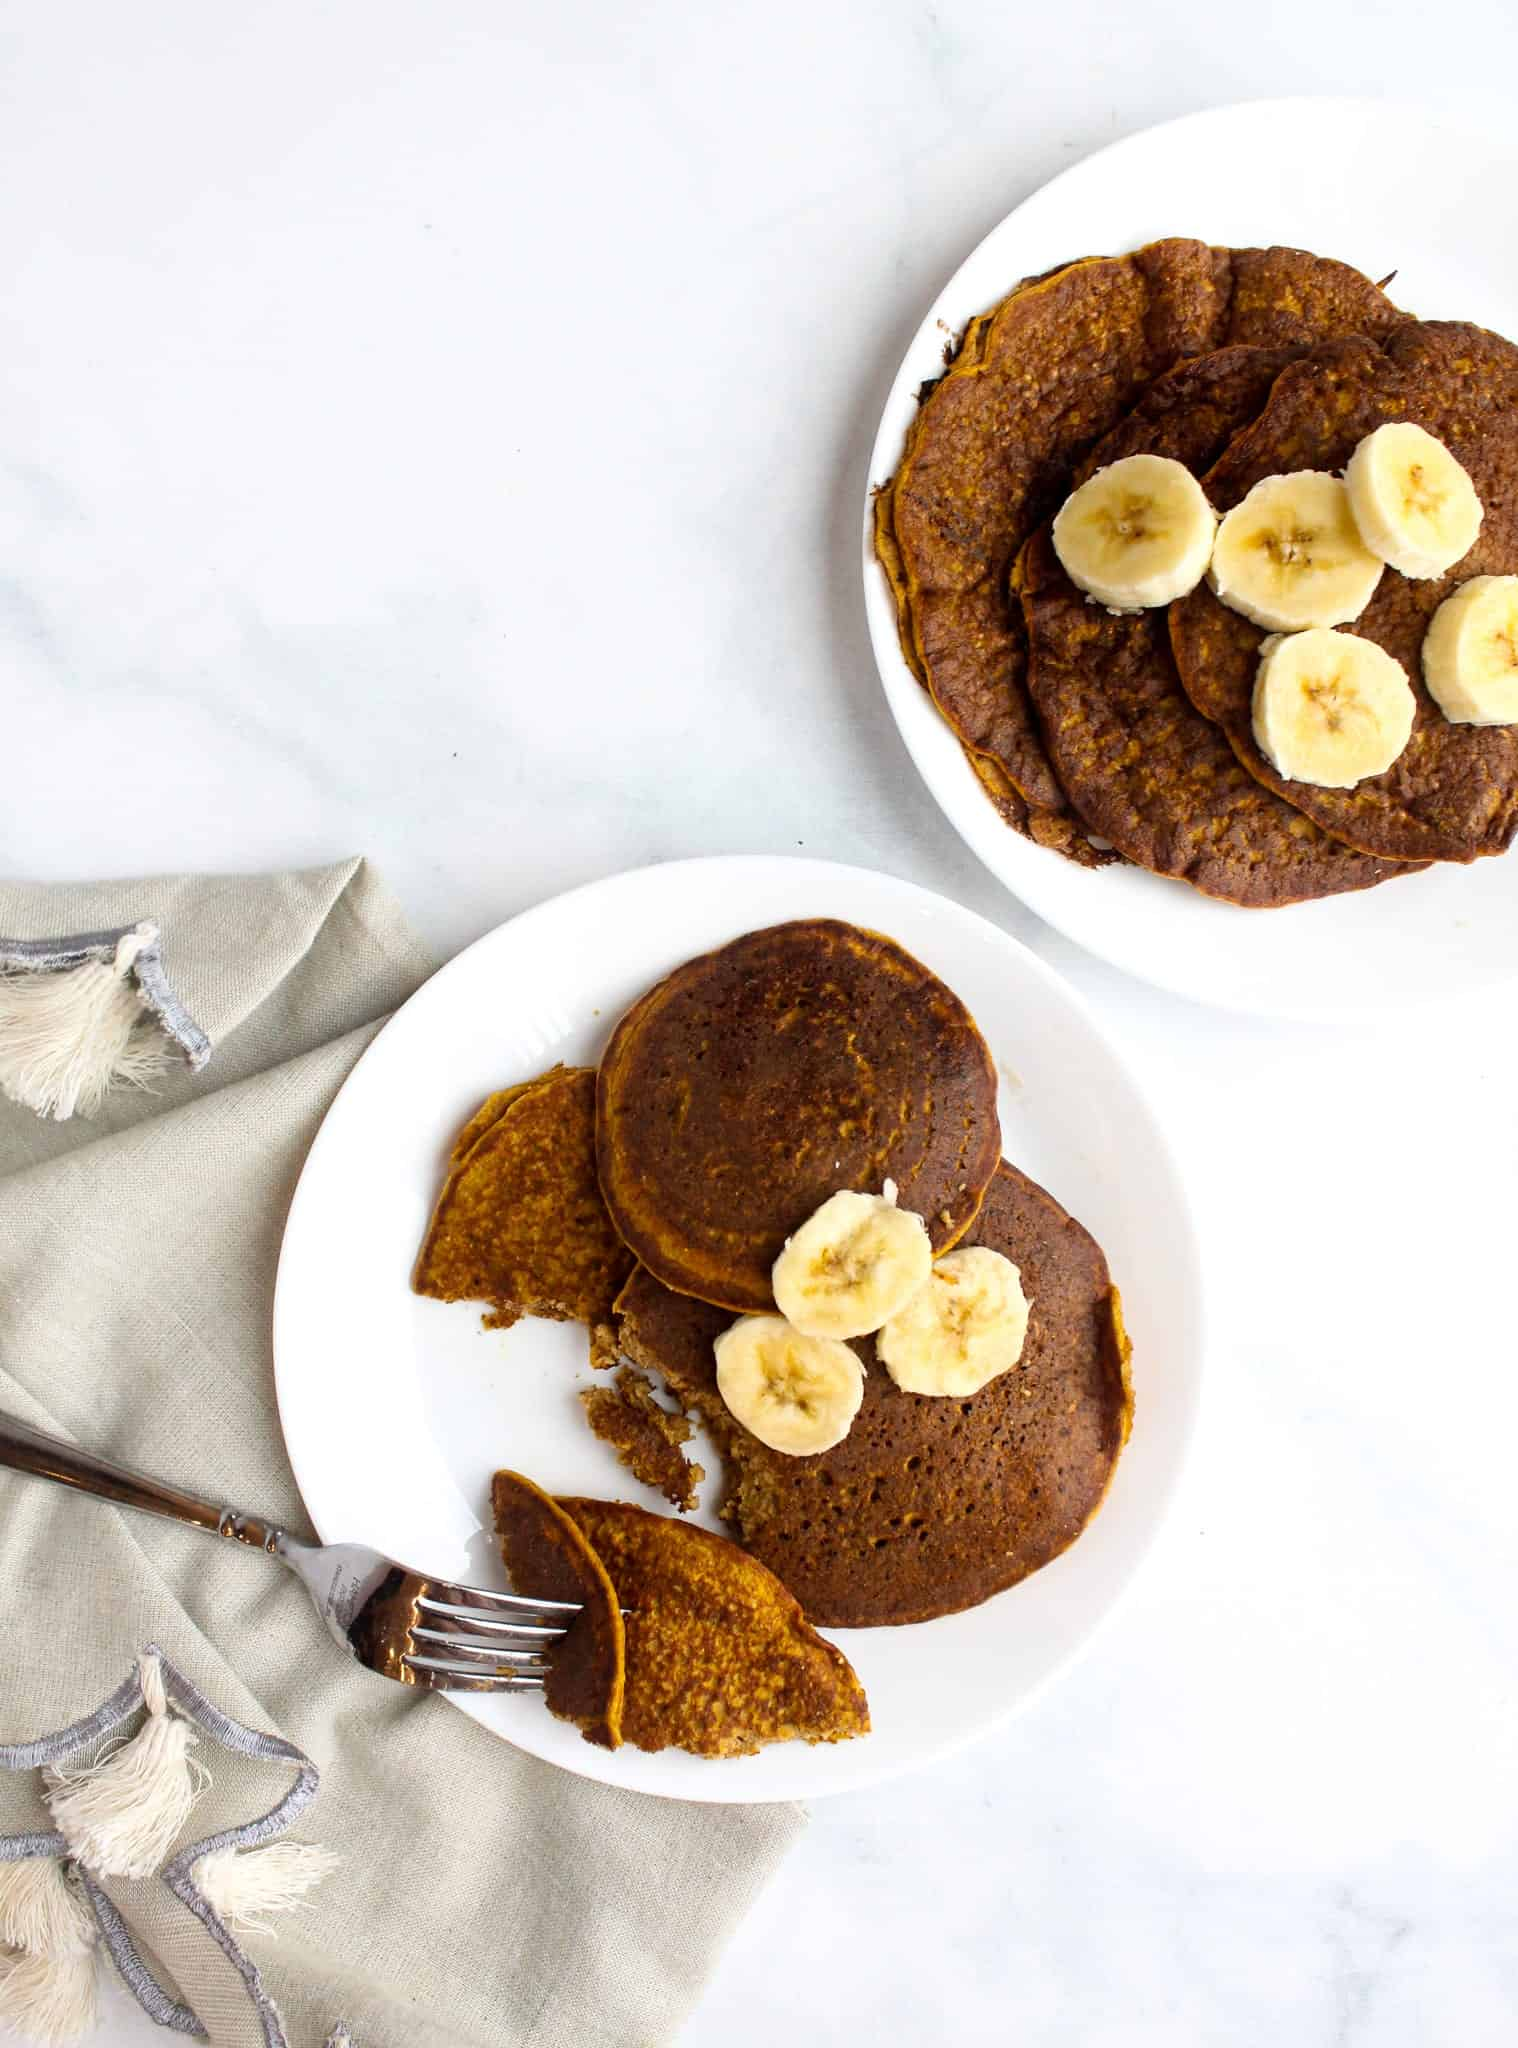 Pumpkin Blender Pancakes for One - #glutenfree #dairyfree #lowfodmap #breakfast #college #pumpkin